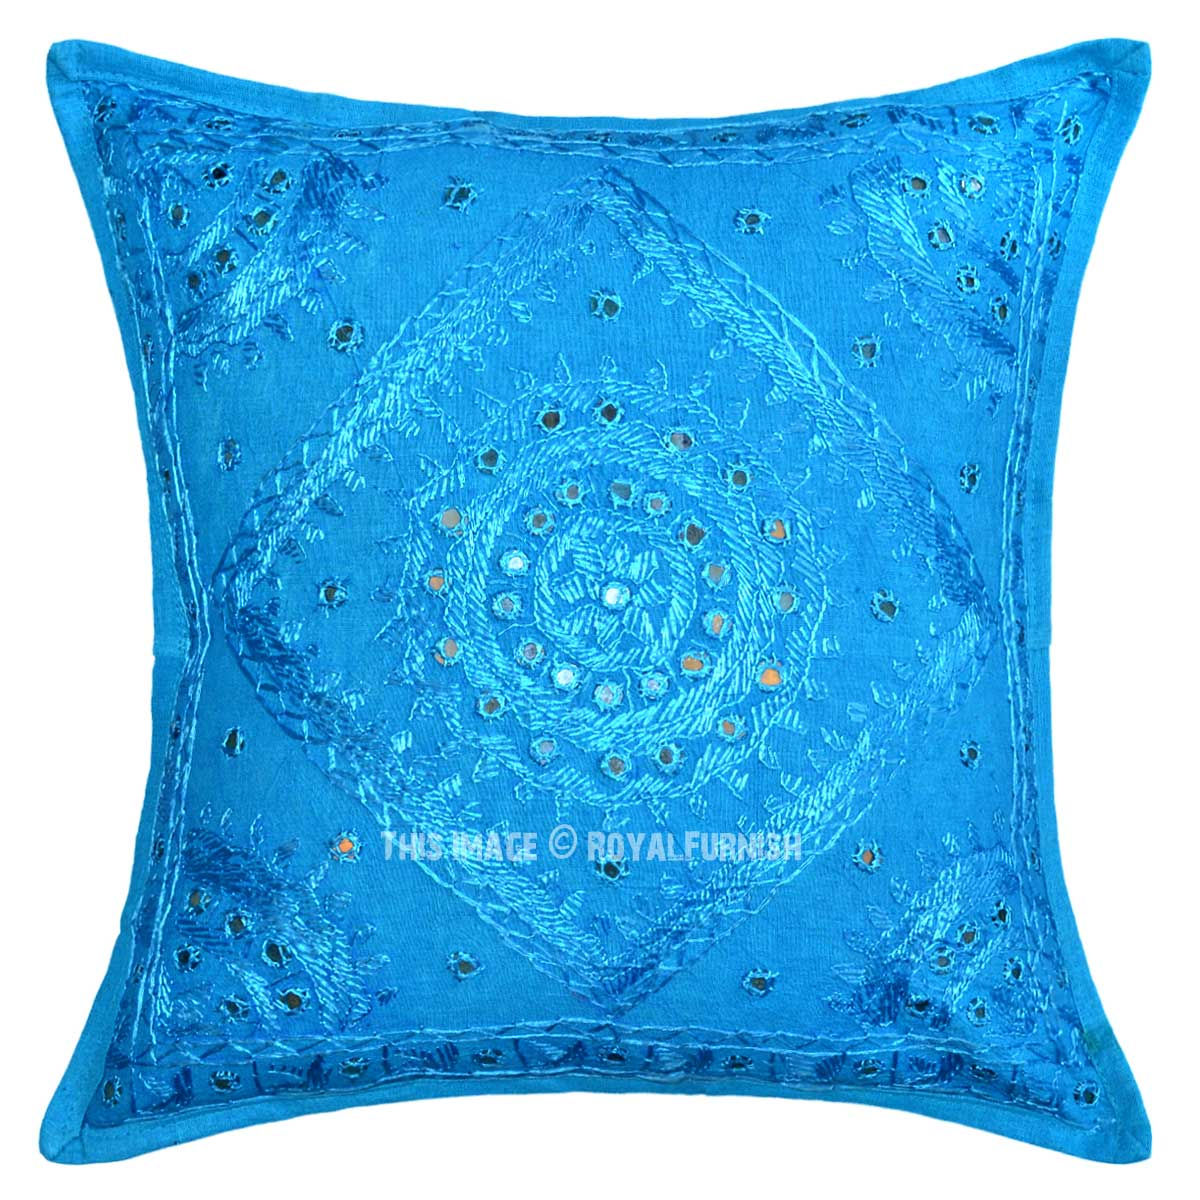 Blue And Aqua Throw Pillows : 16X16 Turquoise Blue Decorative Bohemian Accent Mirrored Pillow Cover - RoyalFurnish.com